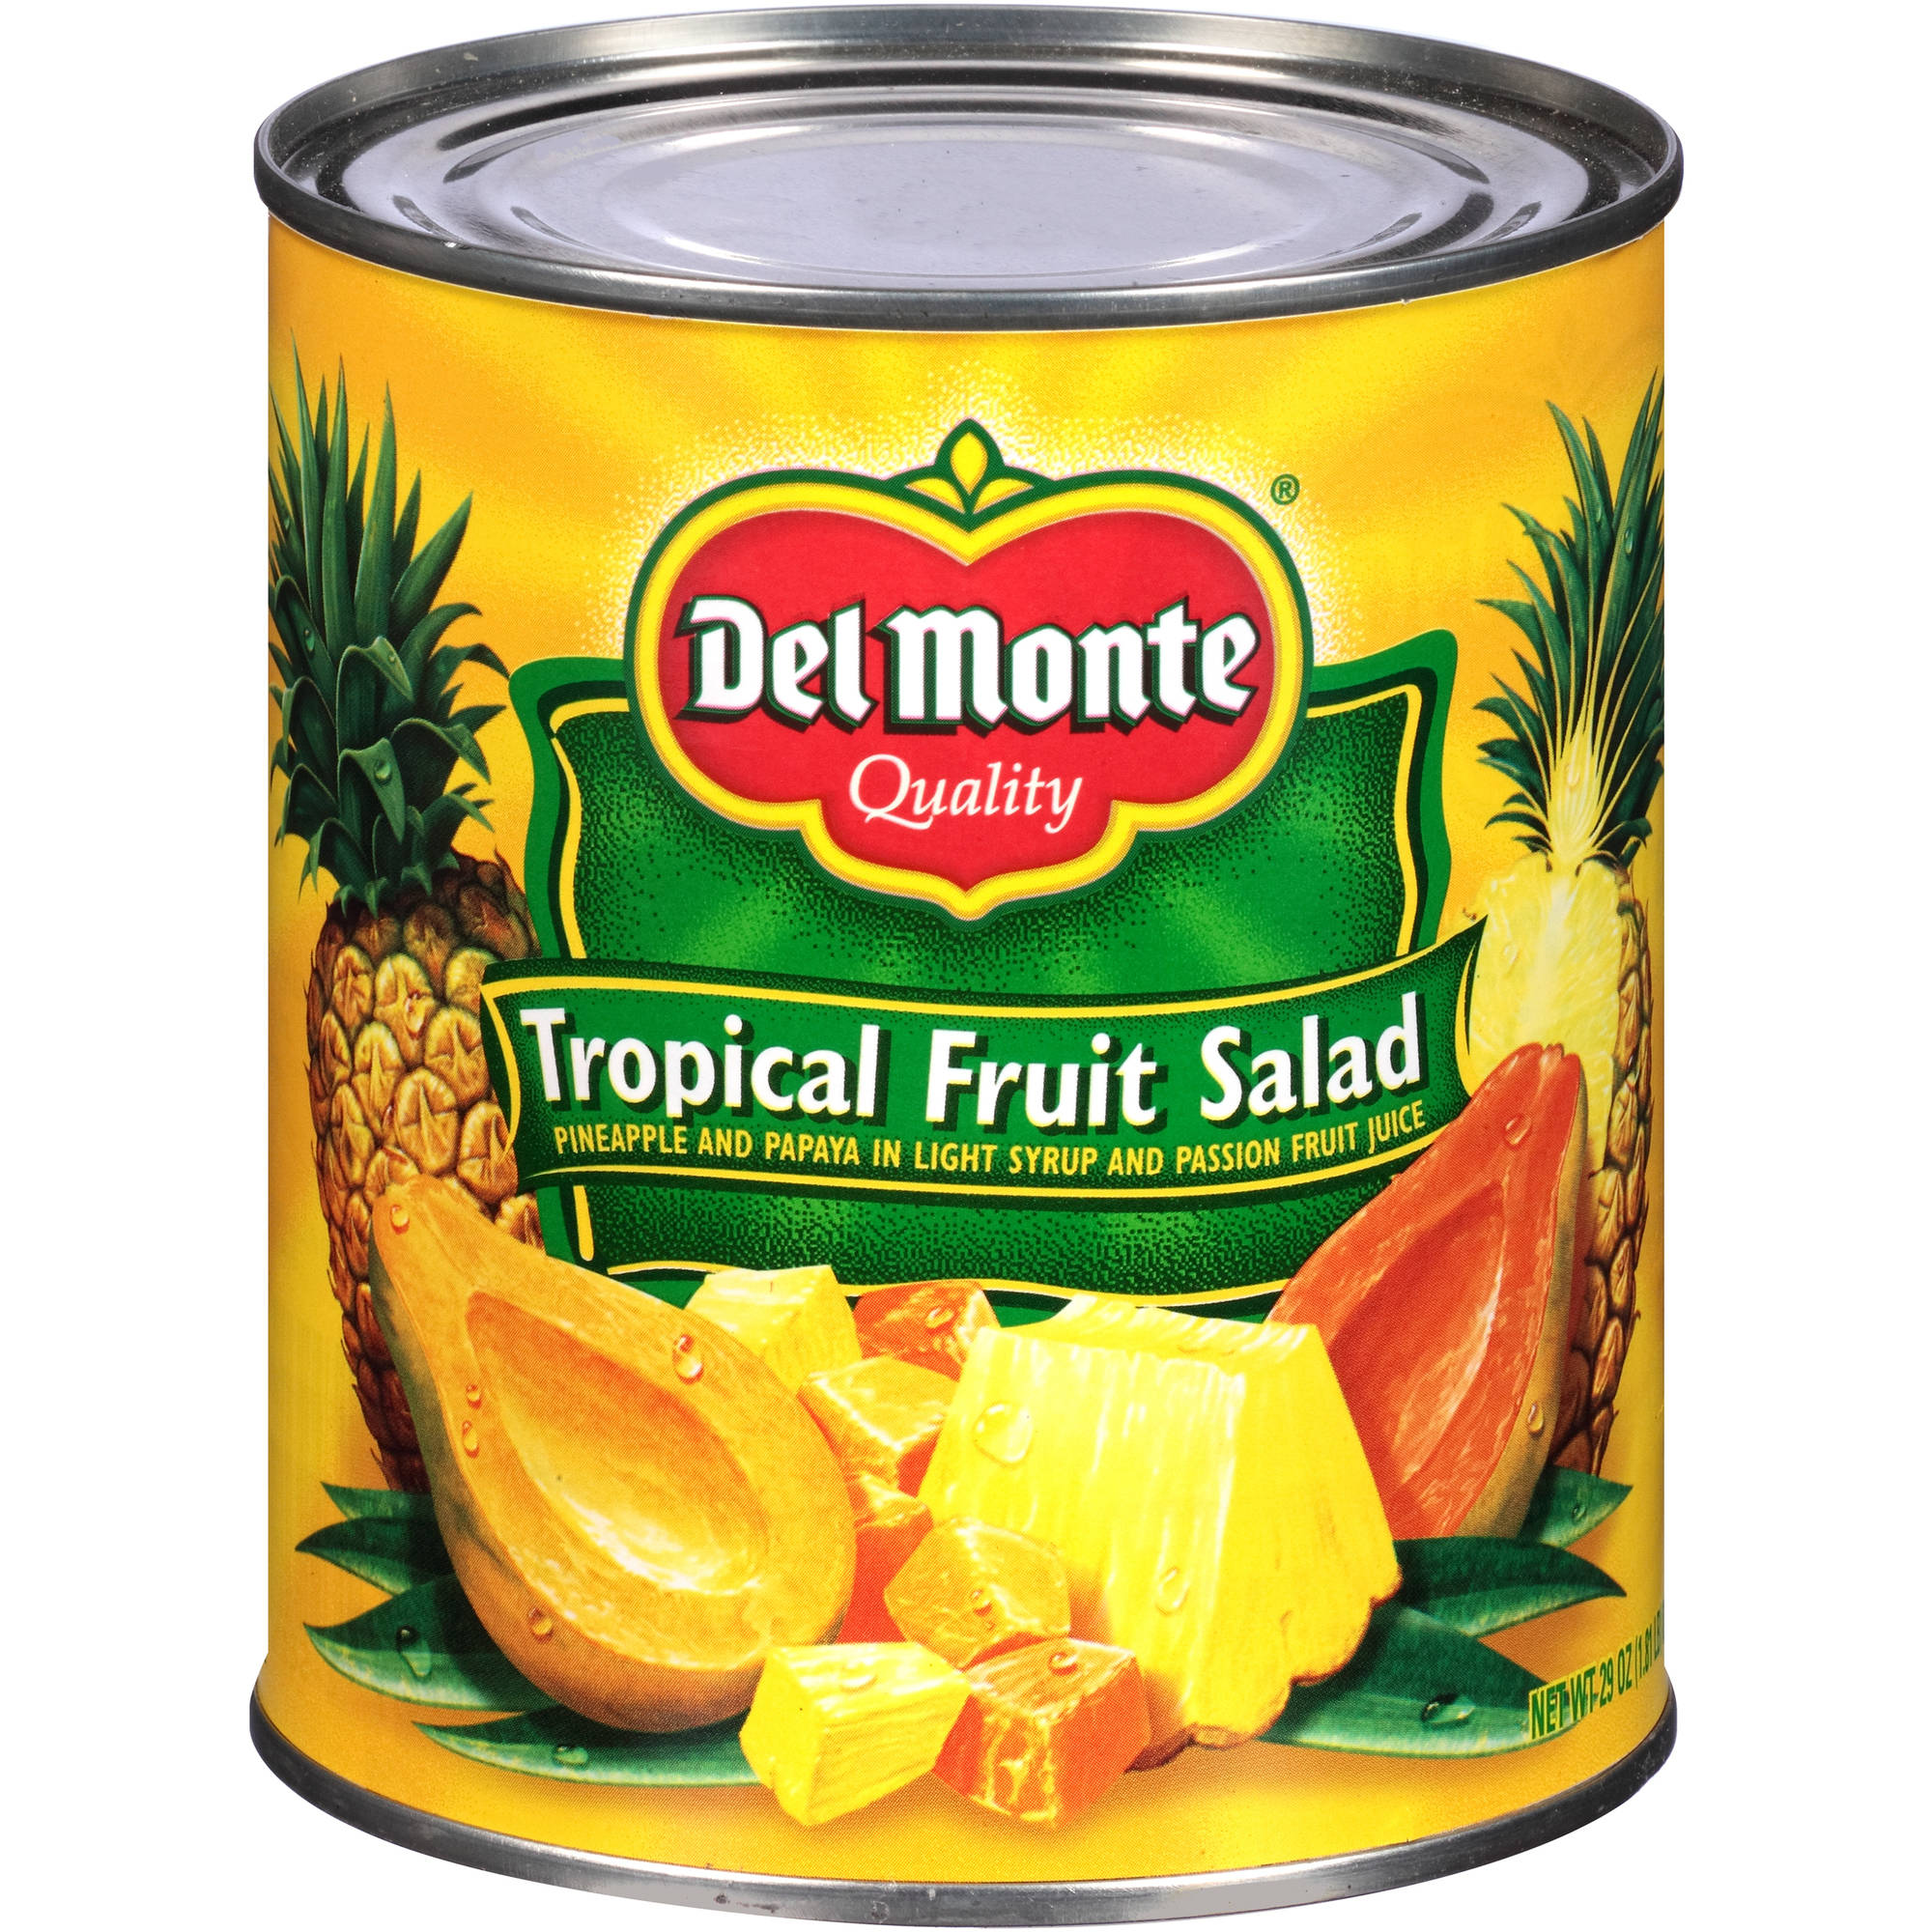 Del Monte Tropical Fruit Salad, 29 oz